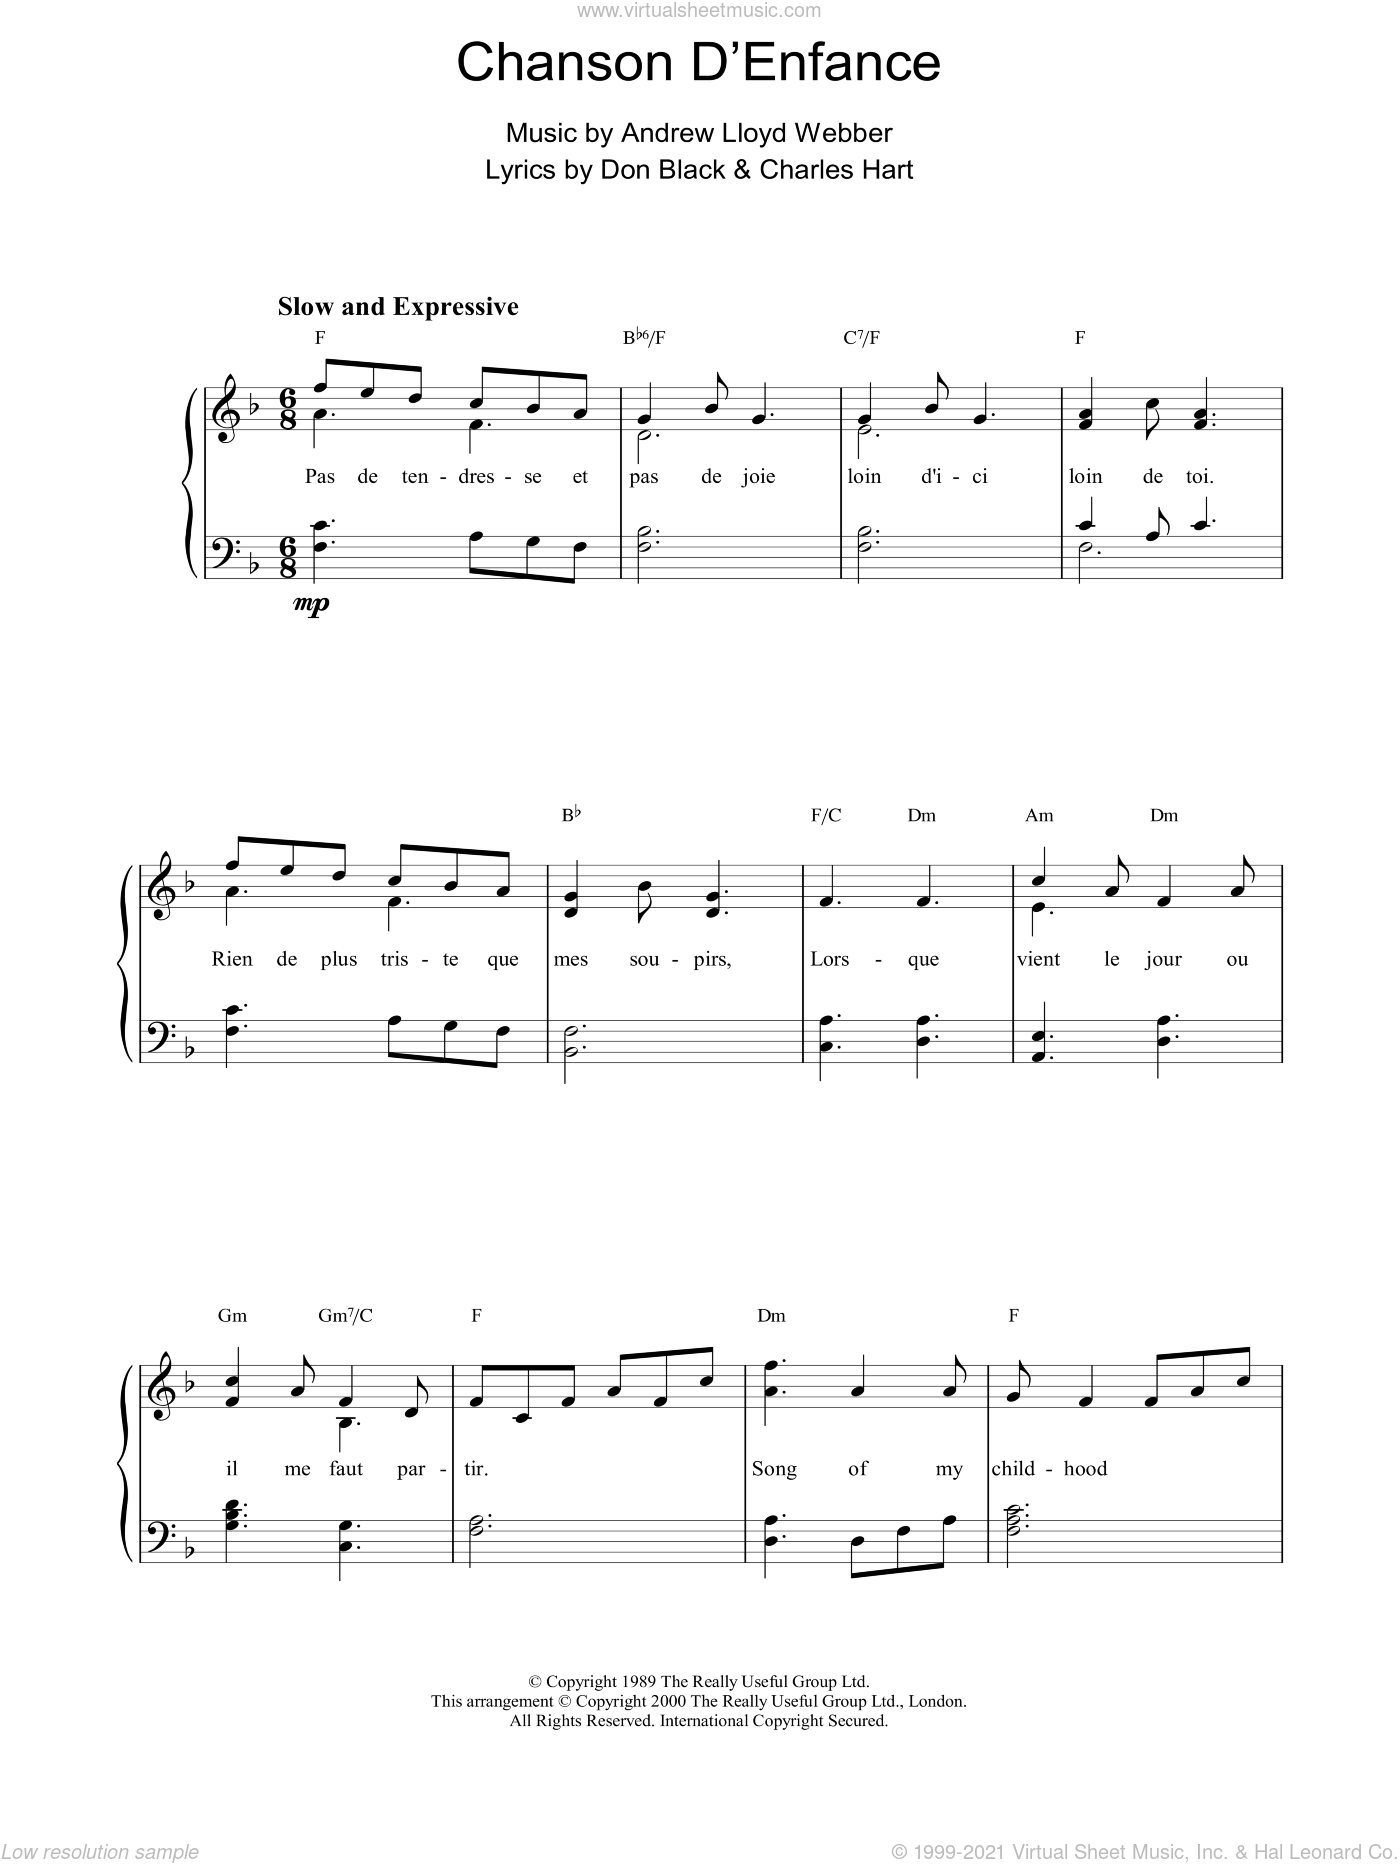 Chanson D'Enfance sheet music for piano solo by Don Black